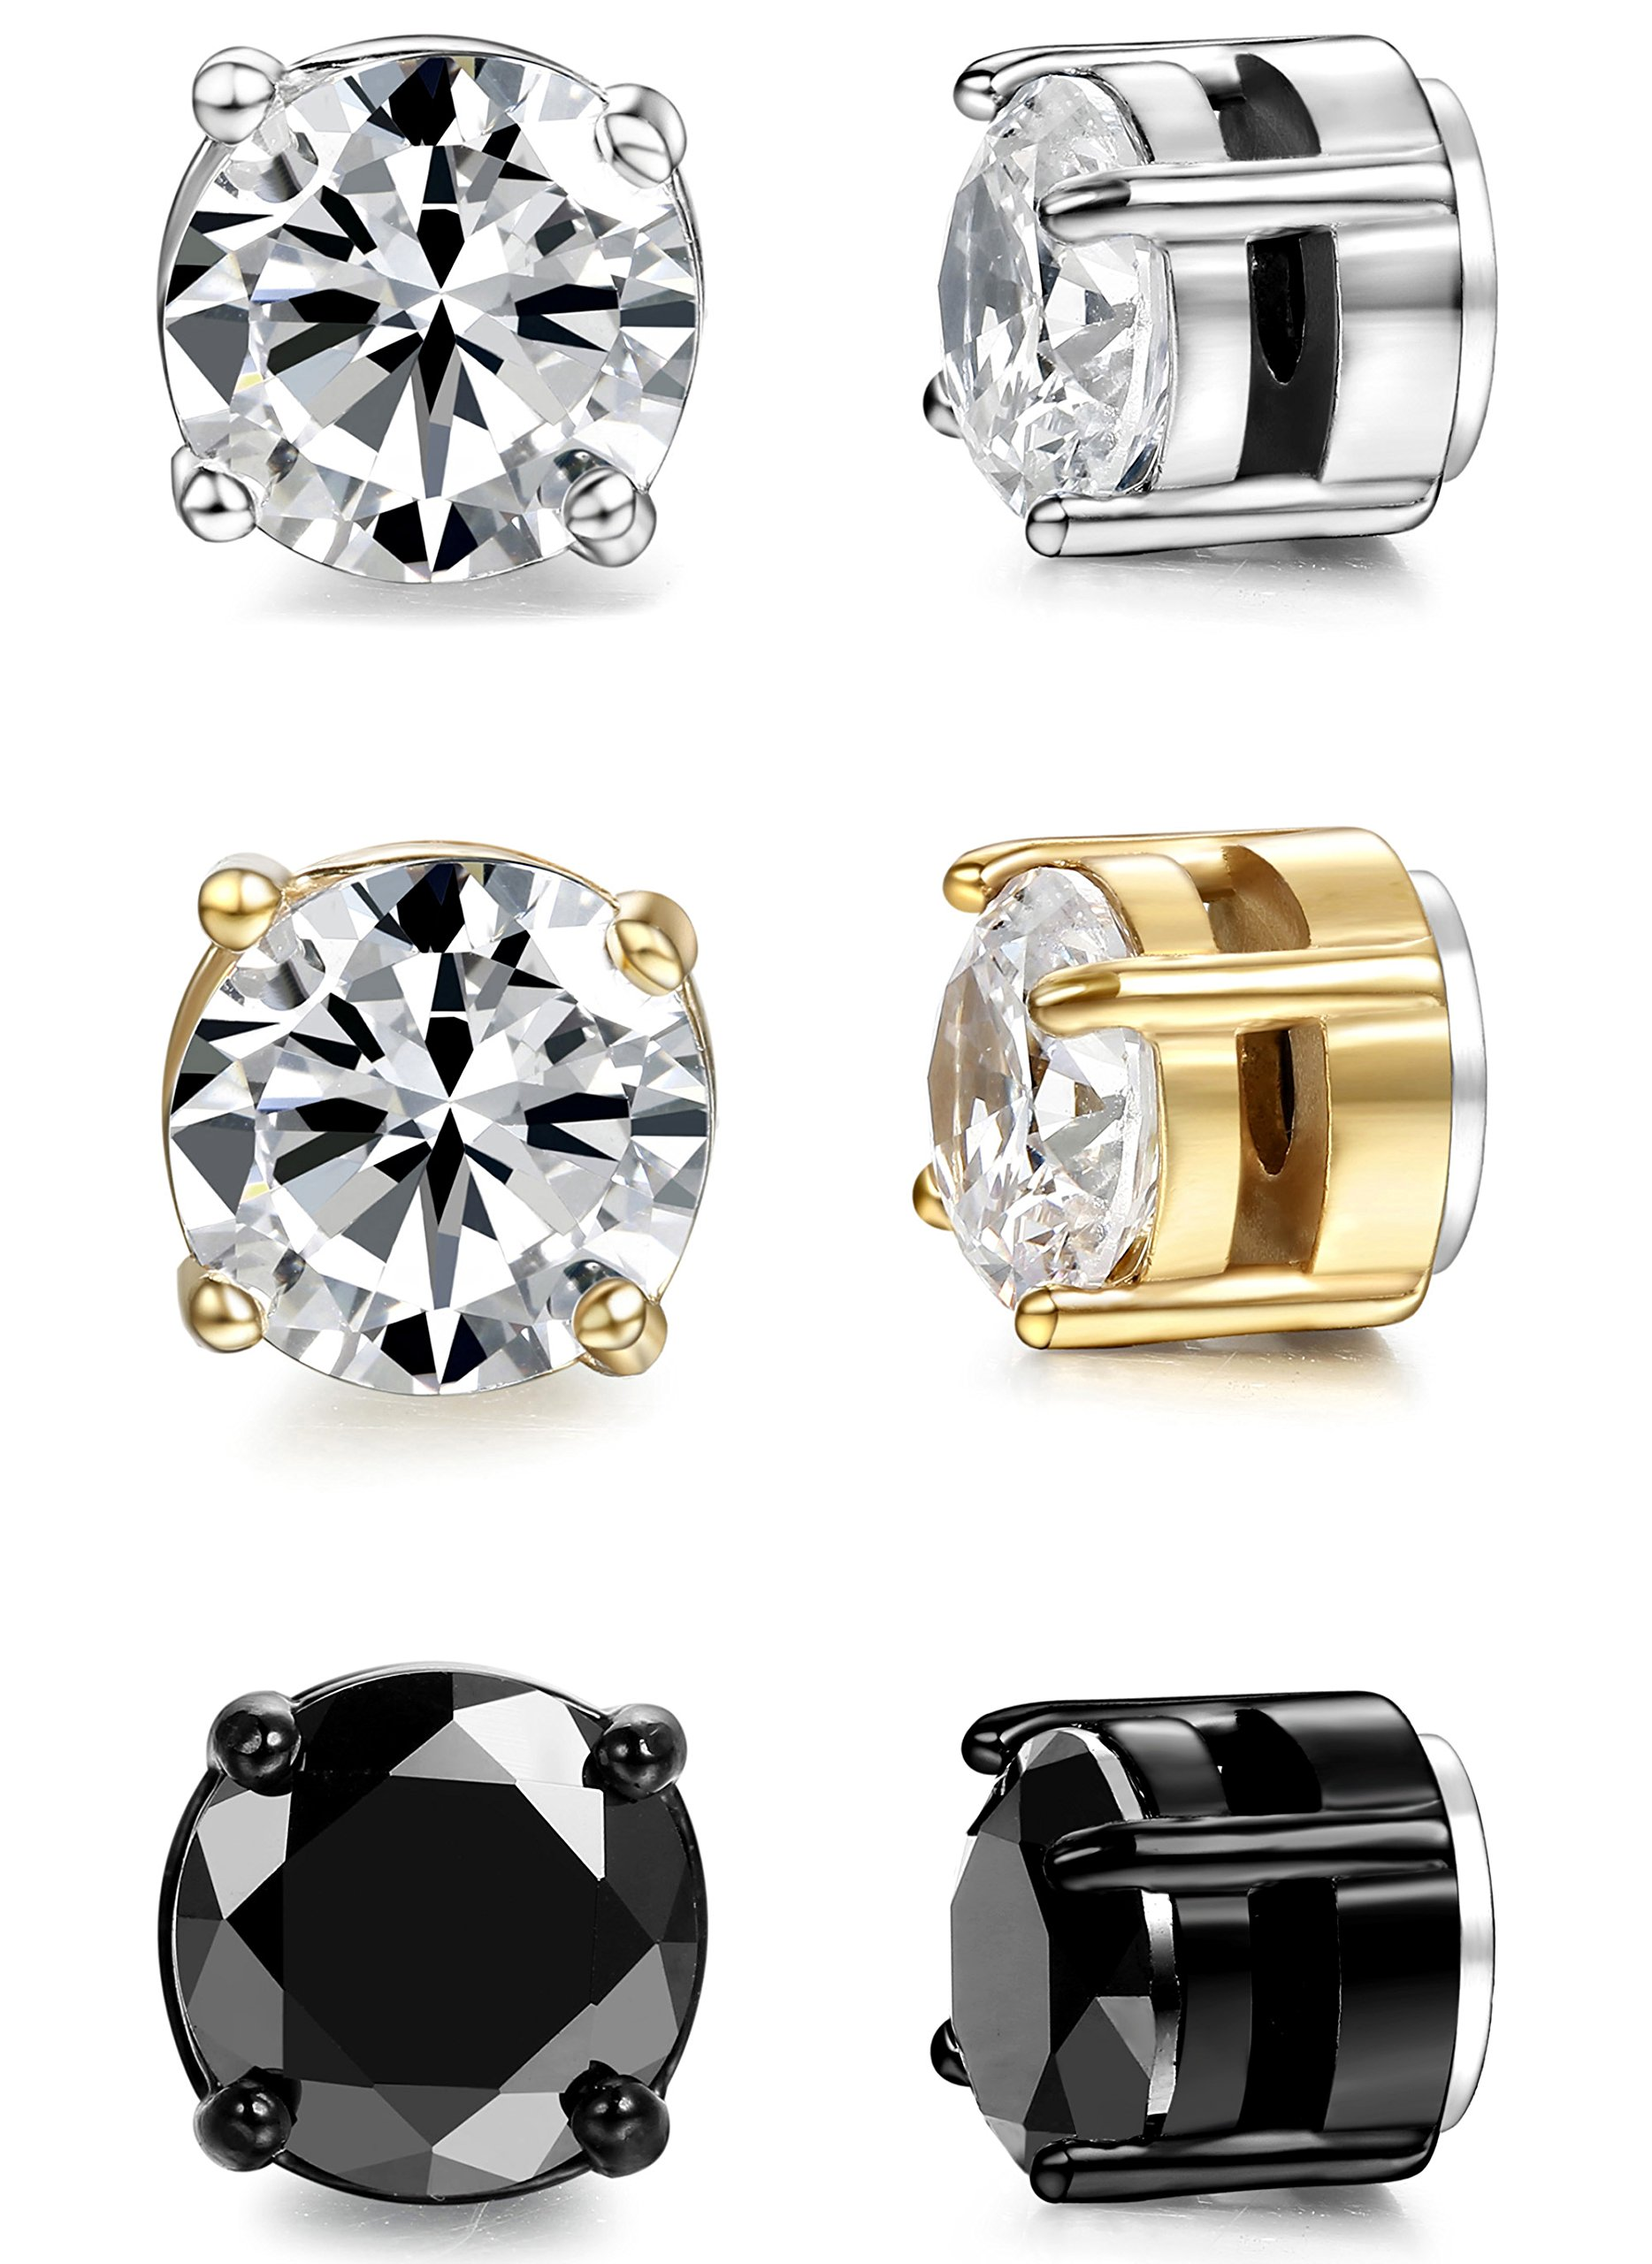 ORAZIO 3 Pairs Stainless Steel Magnetic Stud Earrings for Womens Mens Non Piercing Cubic Zirconia 8mm by ORAZIO (Image #7)